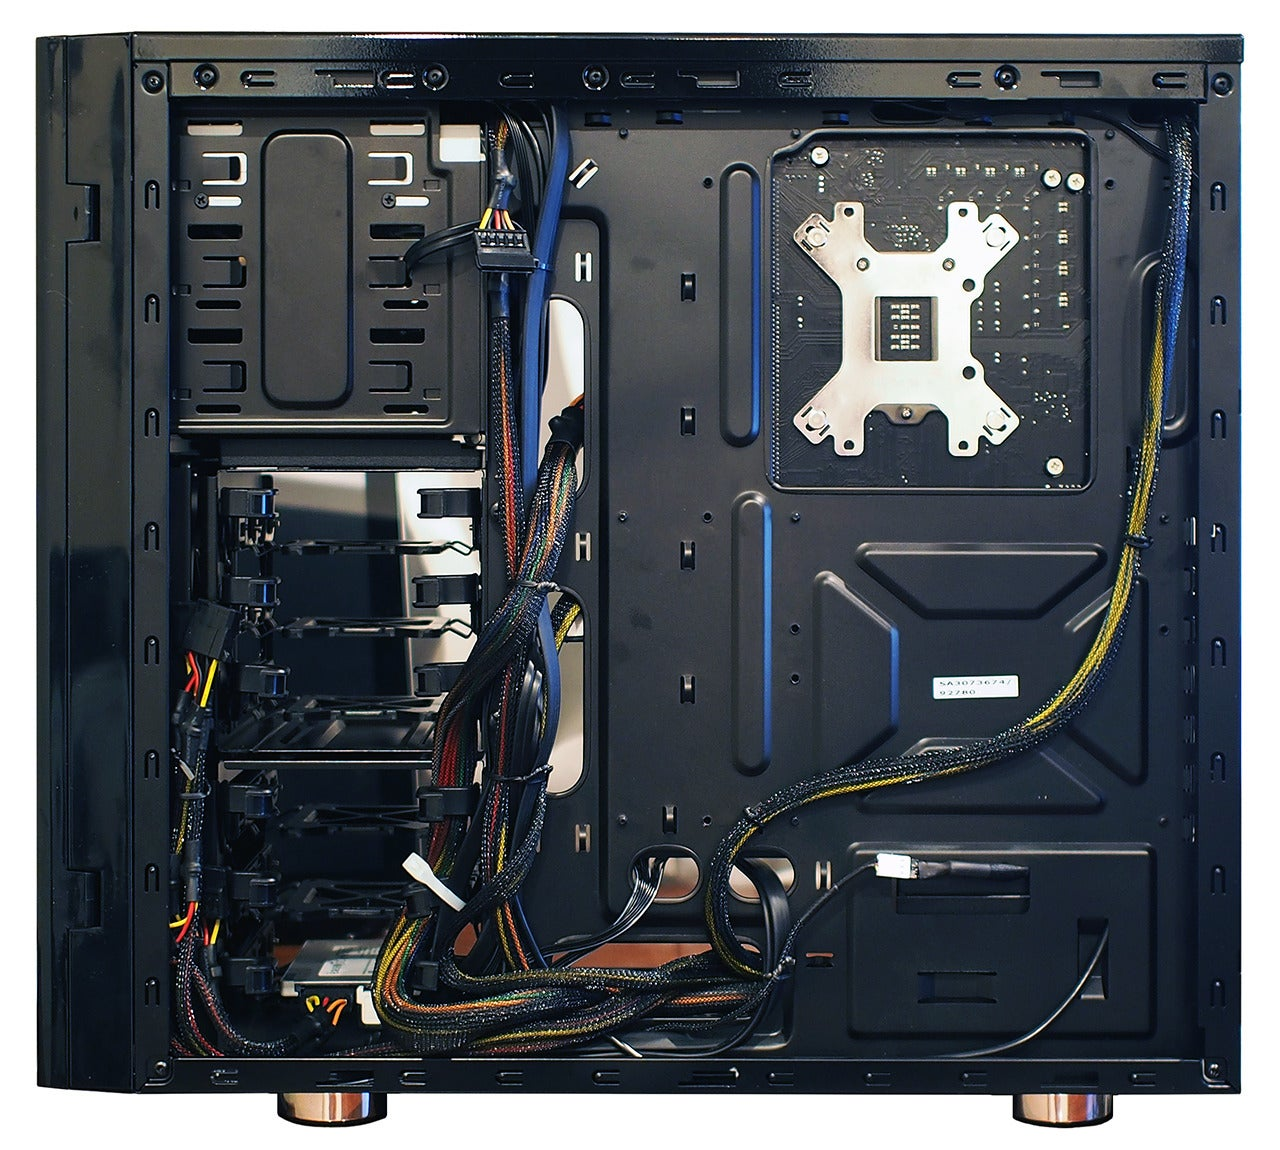 hight resolution of a behind the motherboard glimpse at a cleanly cabled system